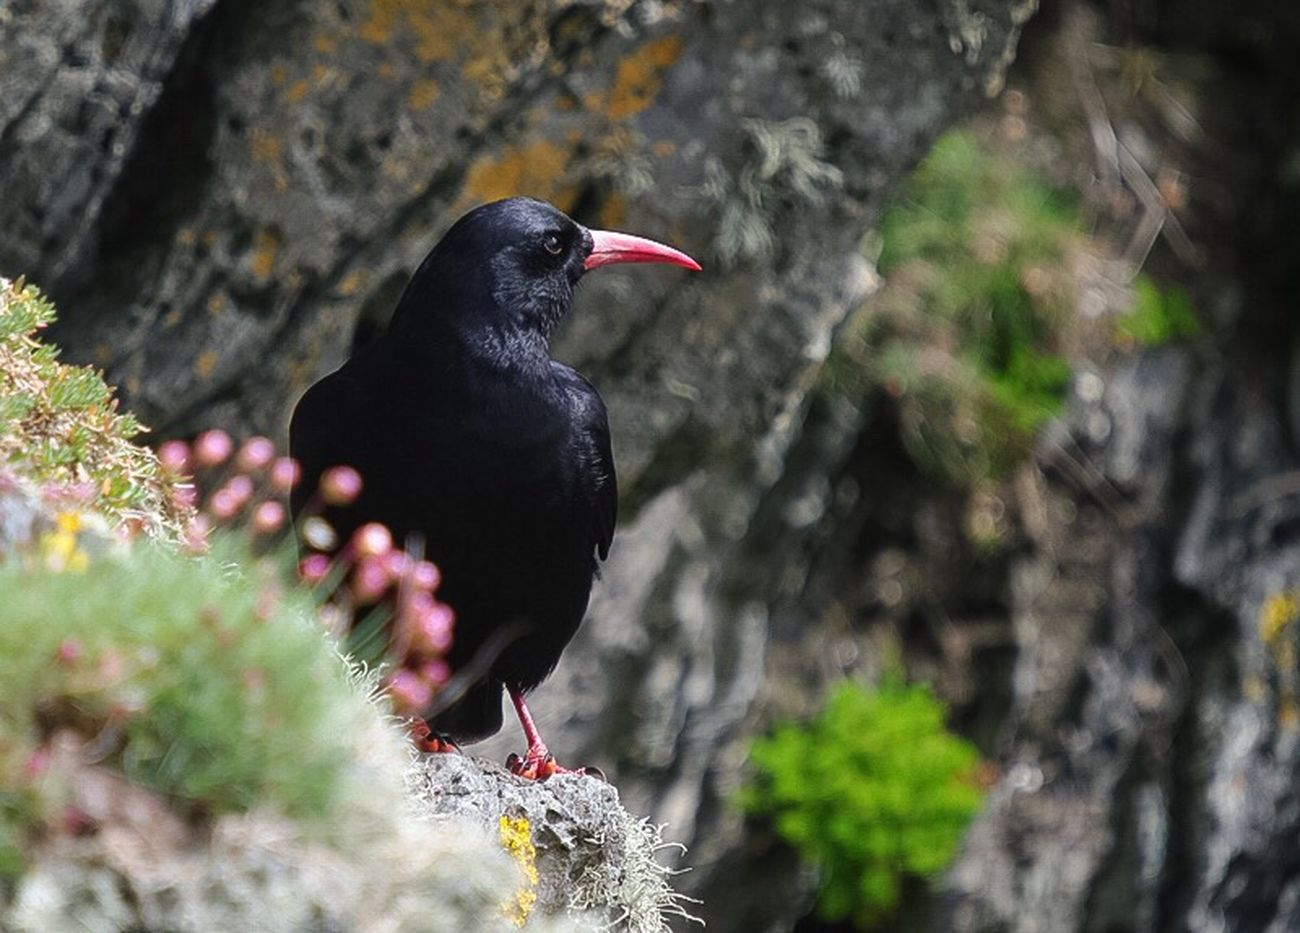 Chough at South Stack Anglesey. Animal Themes One Animal Wildlife Perching Beak Nature Outdoors Nature Beauty In Nature Bird Photography Birds_collection Bird Bird Watching Birds Of EyeEm  Corvid Chough